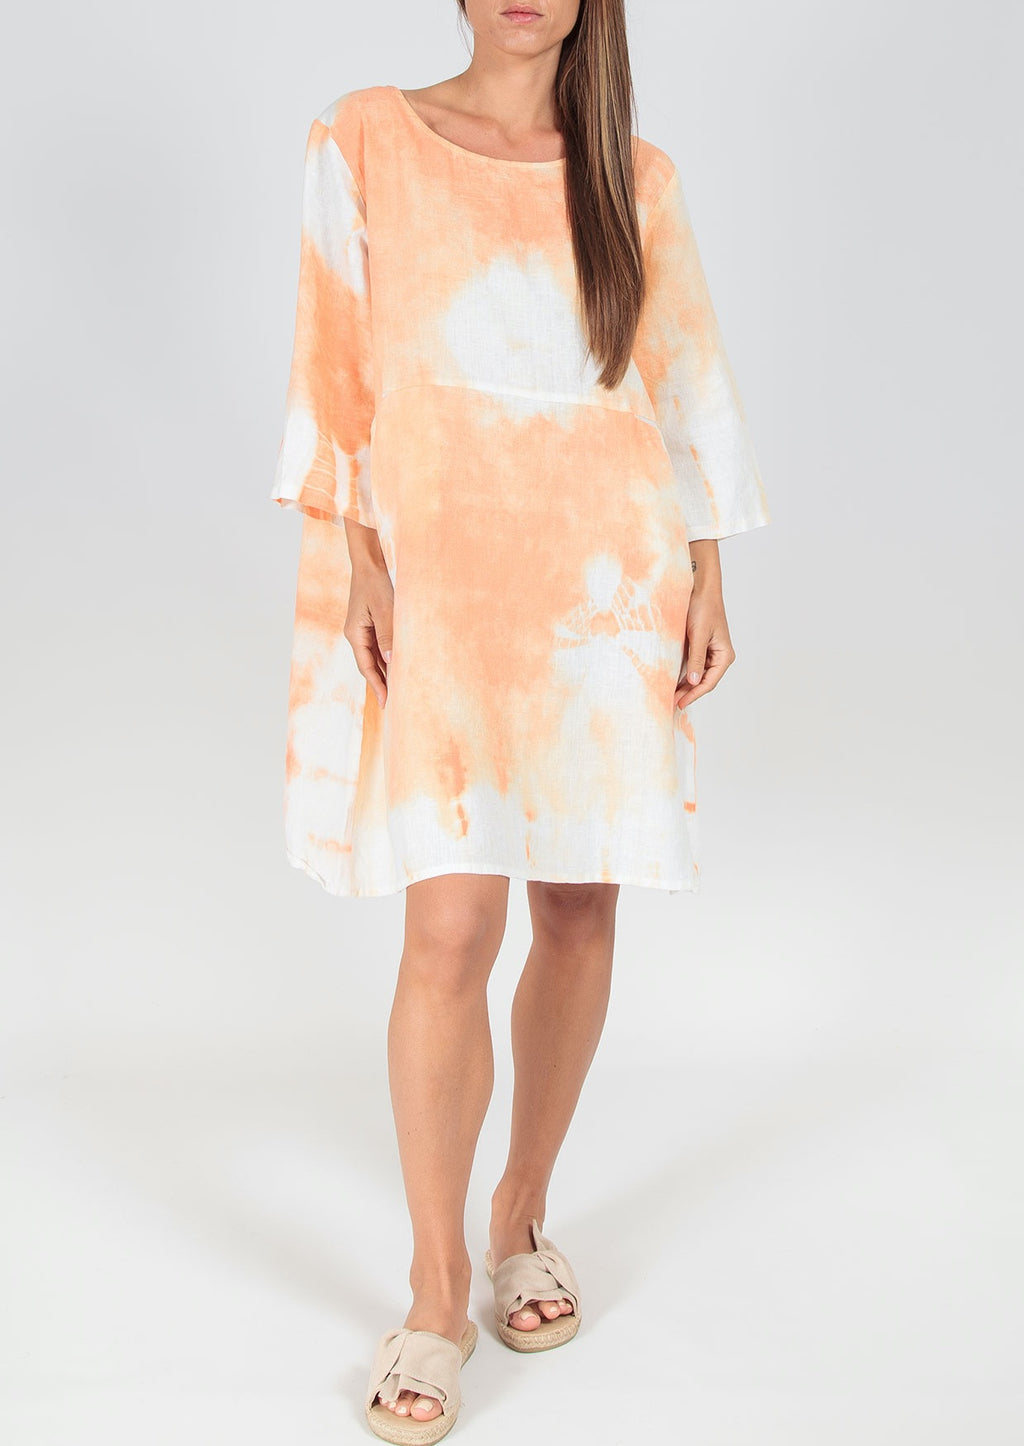 "We Can Do This Dress - Orange, by Ridley  This modern take on a classic linen style, features a unique tie dye effect in fresh orange and white.   Wear with slides or white sneakers, or in cooler months with tan boots.  Features:  Relaxed fit  Scoop neck  3/4 sleeves  Button up at back of neck  100% linen  Made in Italy  Model is 5""5' and wears a size S"